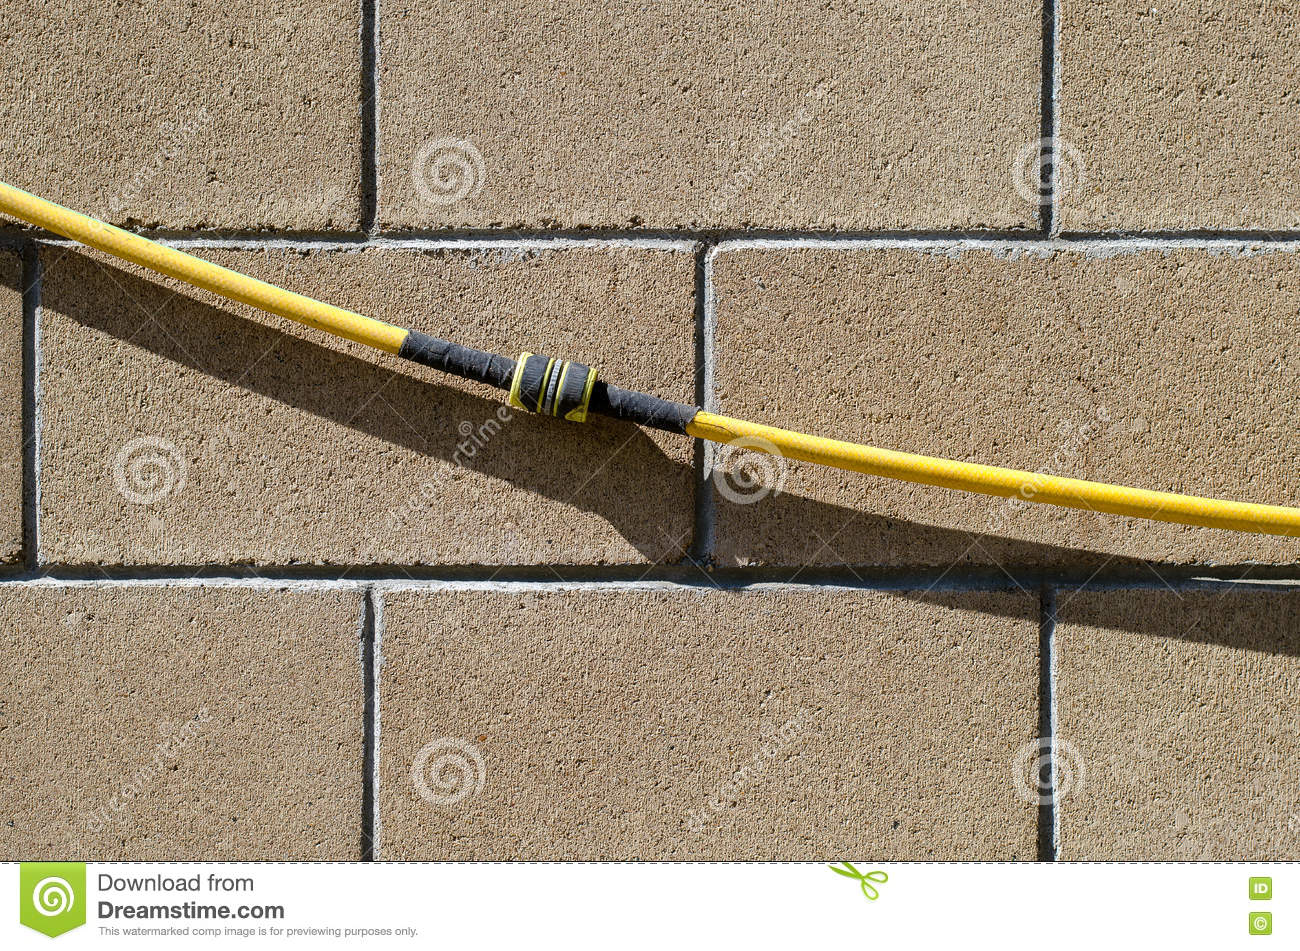 The Garden Hose With The Repair Coupling Hangs On A Wall From Smooth ...